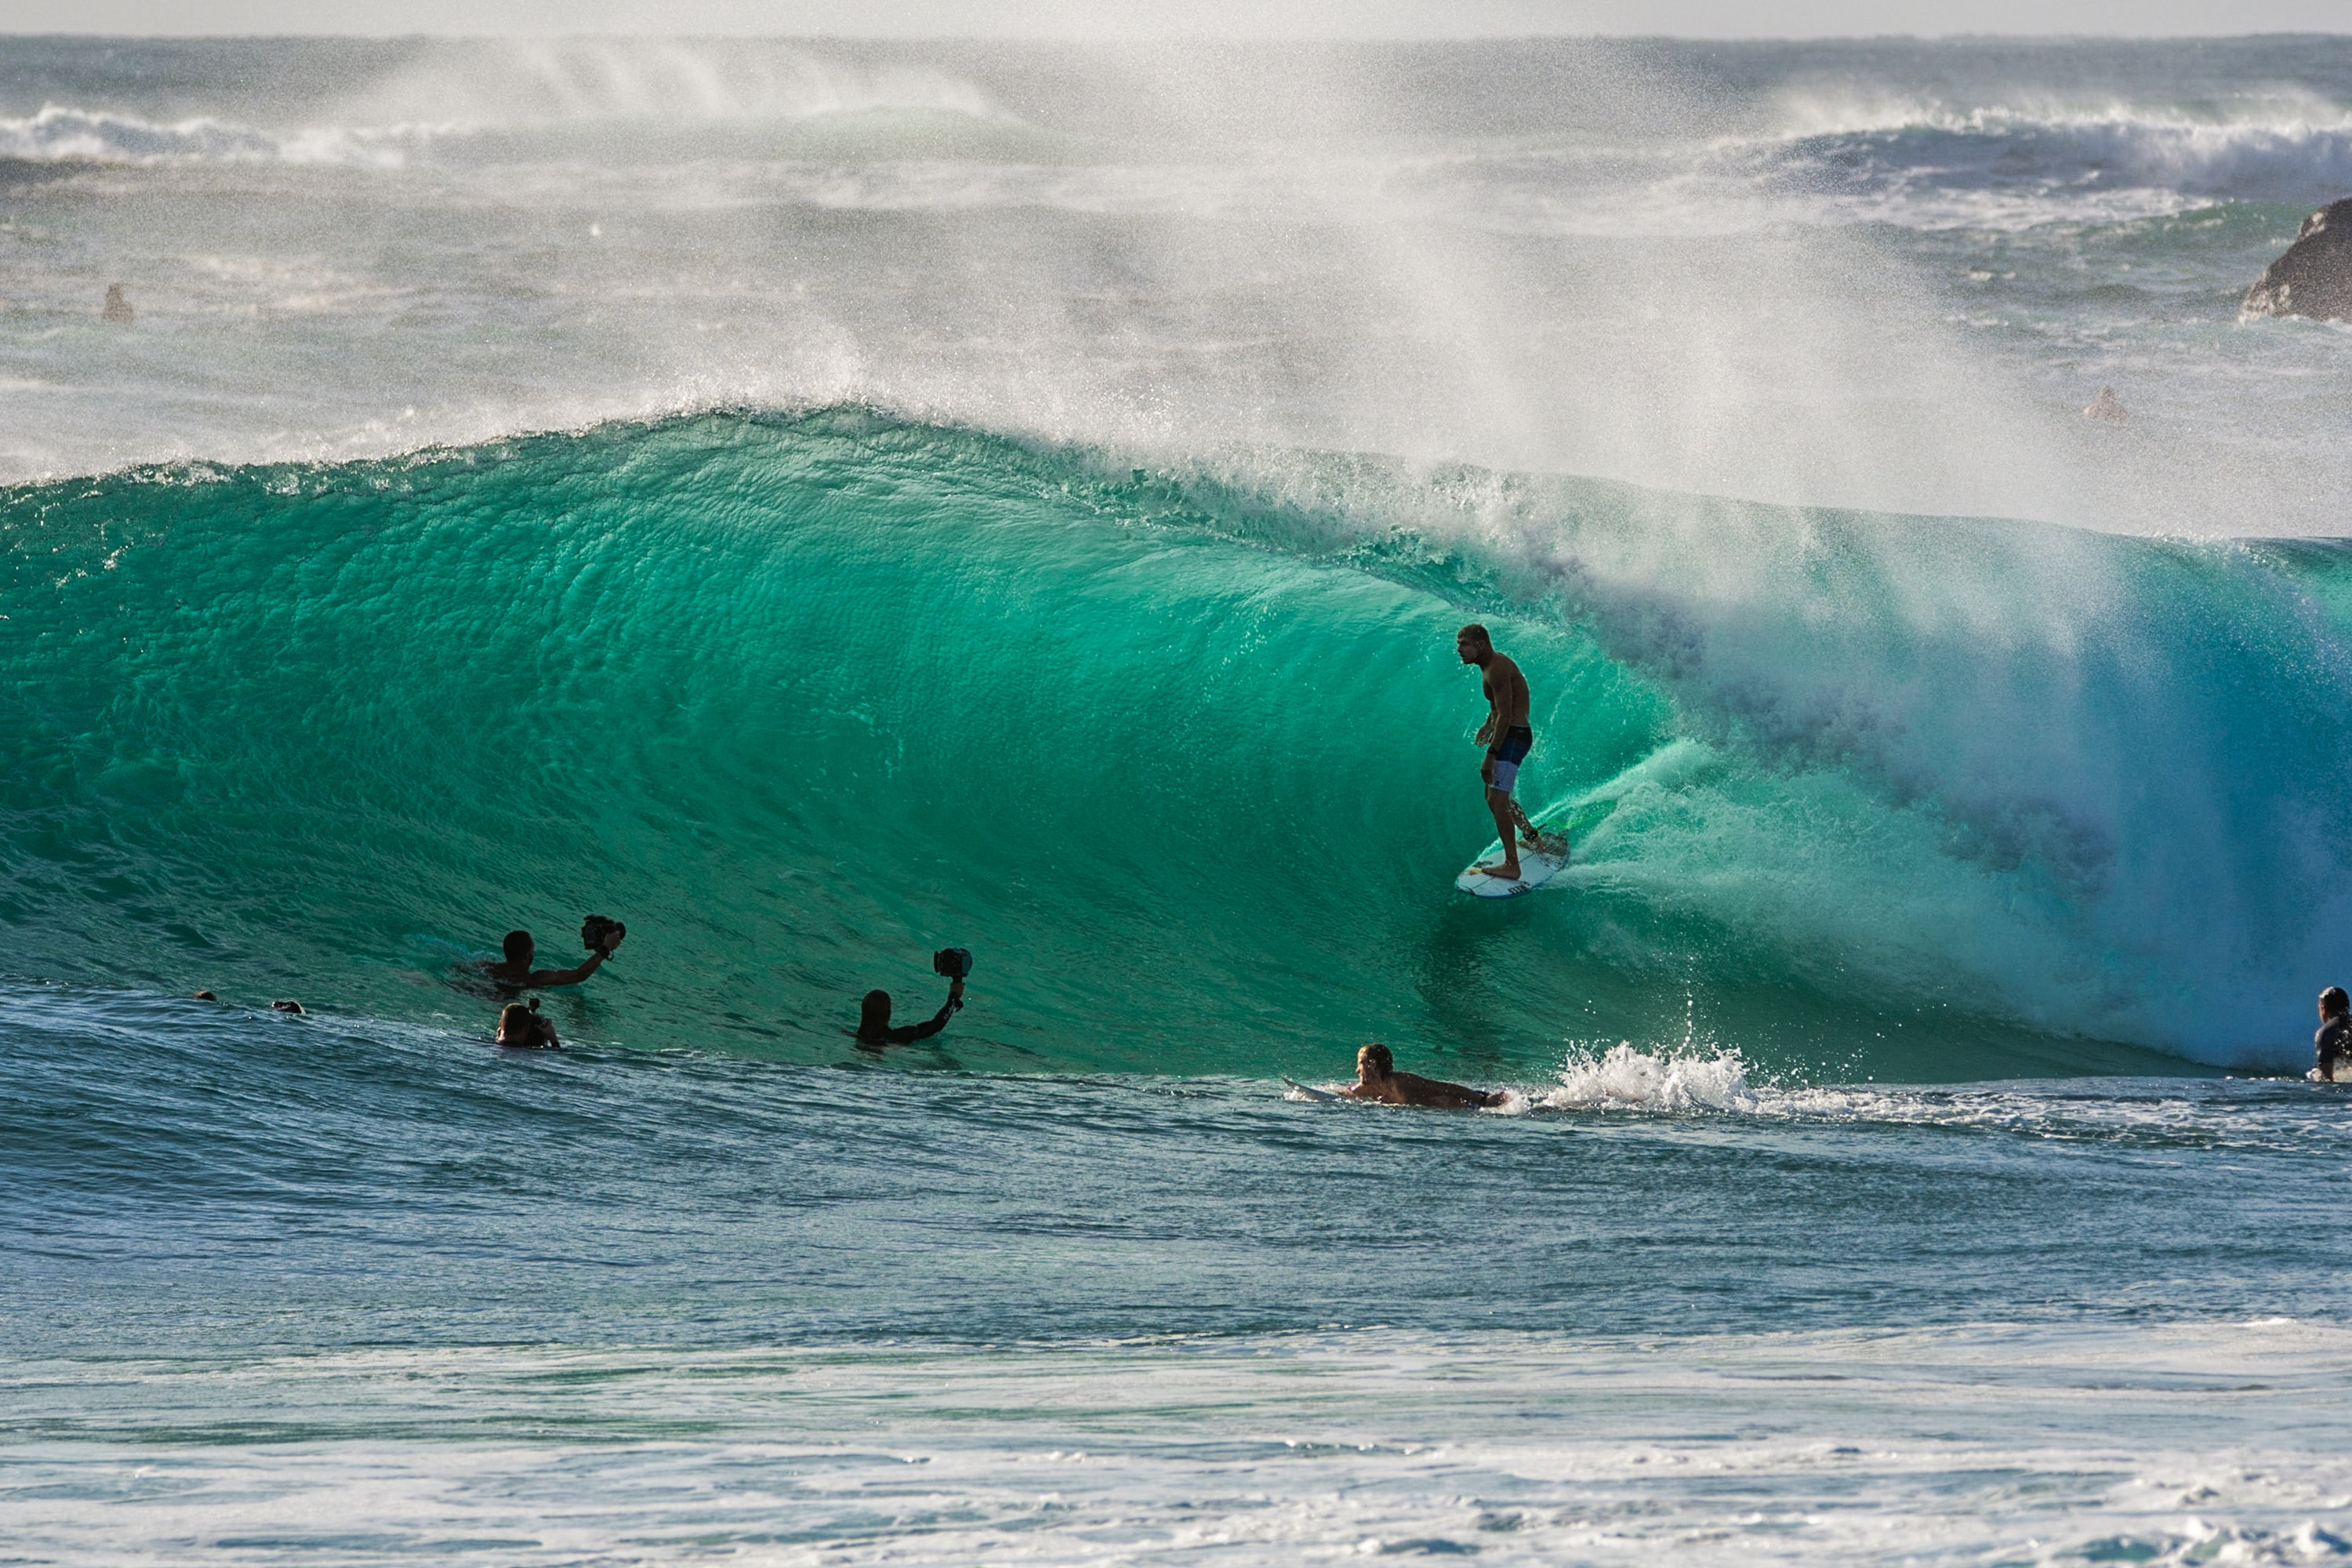 people surfing on waves